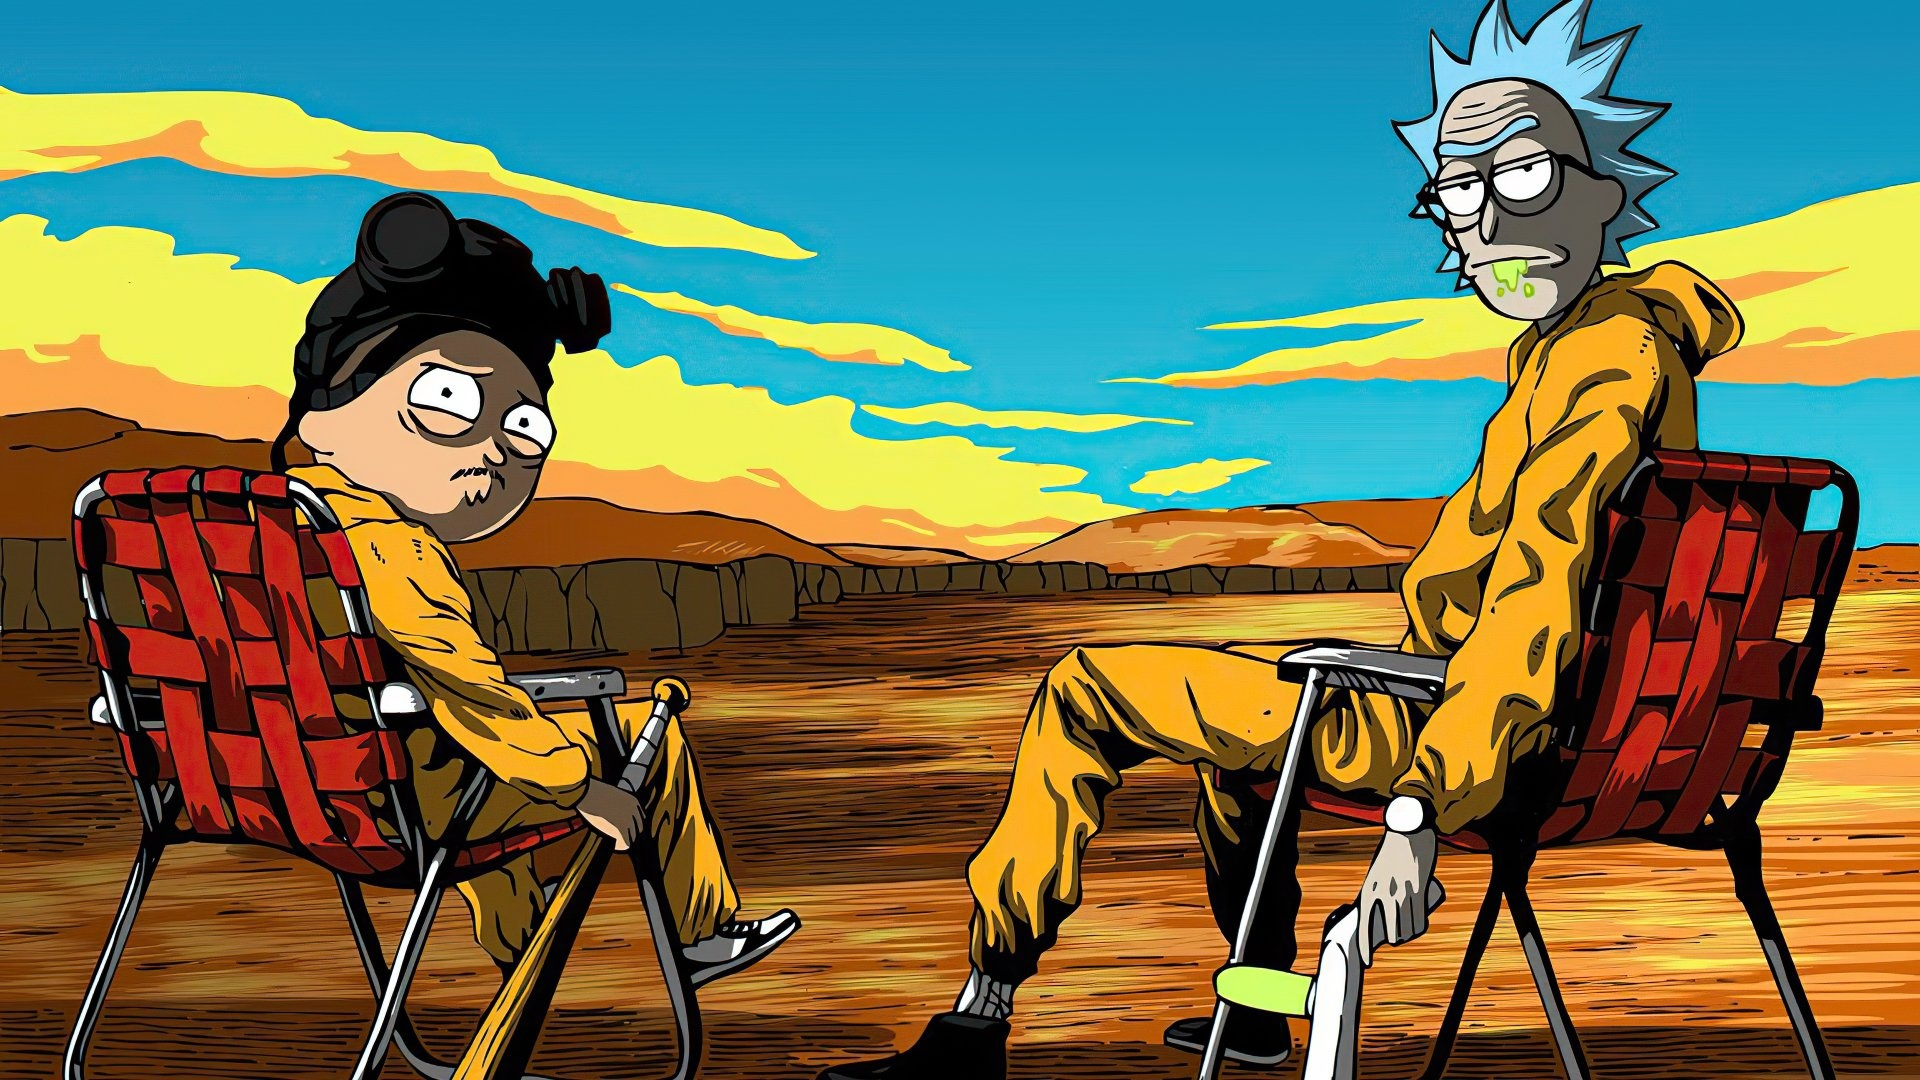 Rick And Morty Art free pic